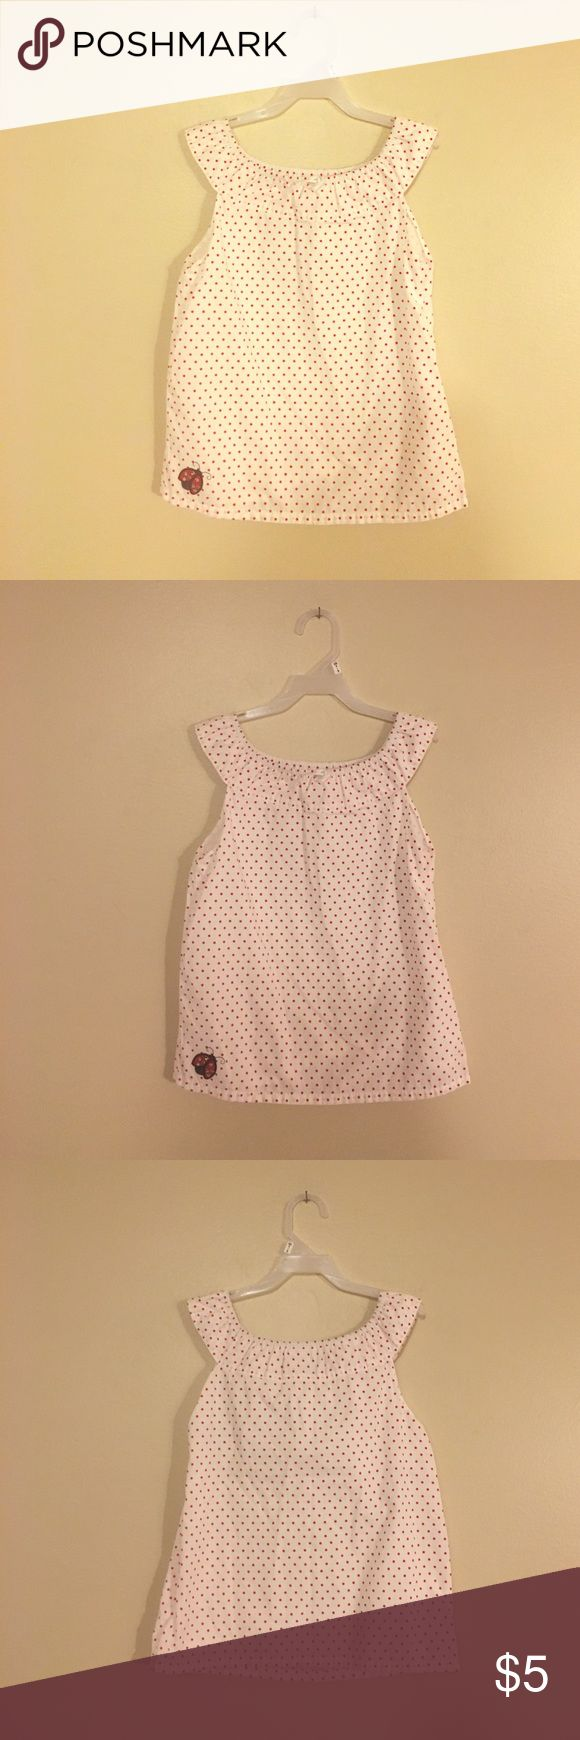 Gymboree Red & White Lady Bug Long Top/Dress 9 Gymboree - lady bug Long Tunic shirt. Size 9. Looks adorable w leggings !! Excellent condition. Smoke free. Has side Zipper. Lady bug has rhinestones!! So sweet !! Please check with me if need measurements. Gymboree Shirts & Tops Camisoles